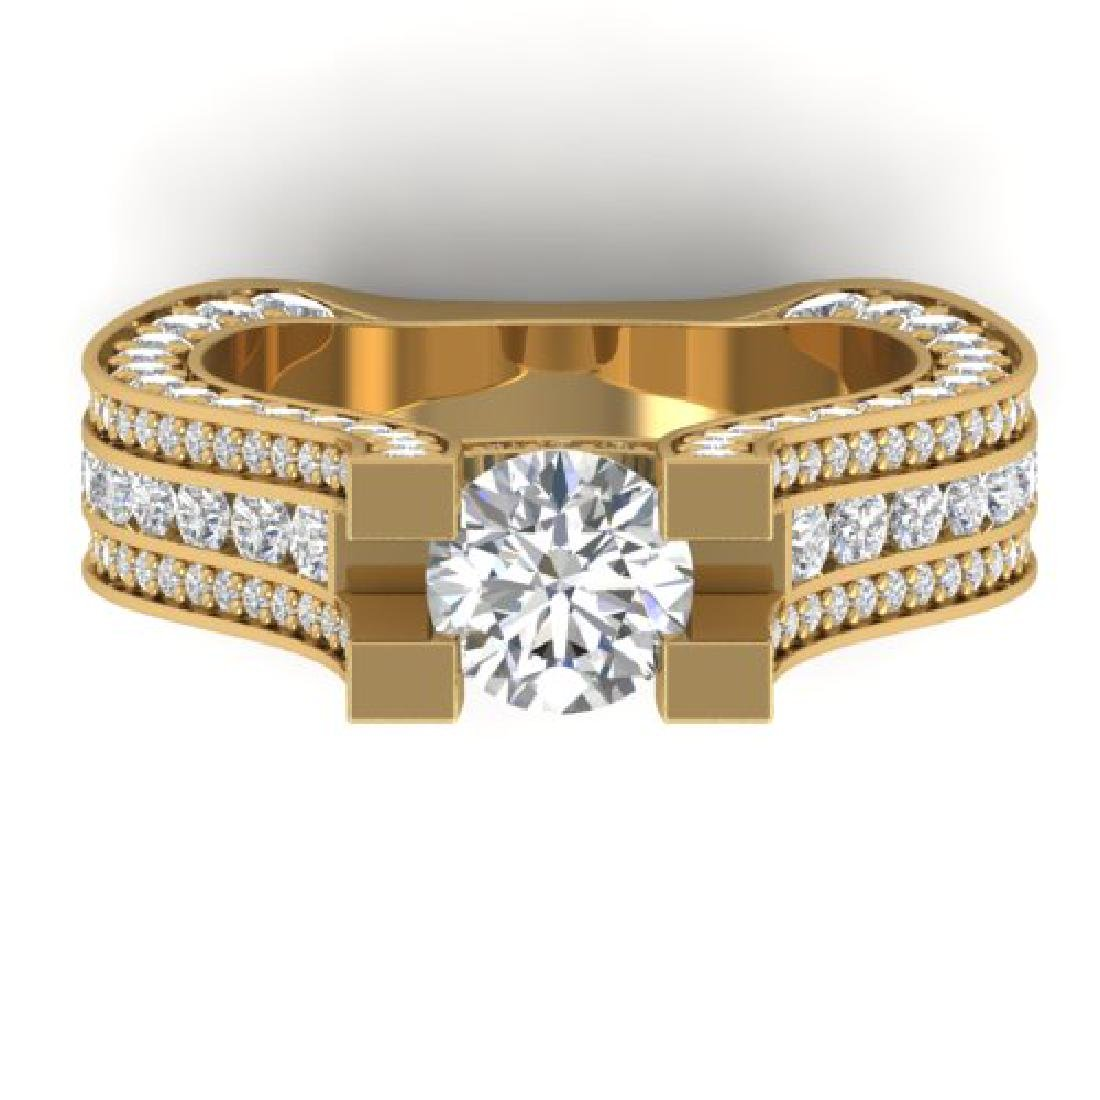 4.5 CTW Certified VS/SI Diamond Art Deco Micro Ring 18K